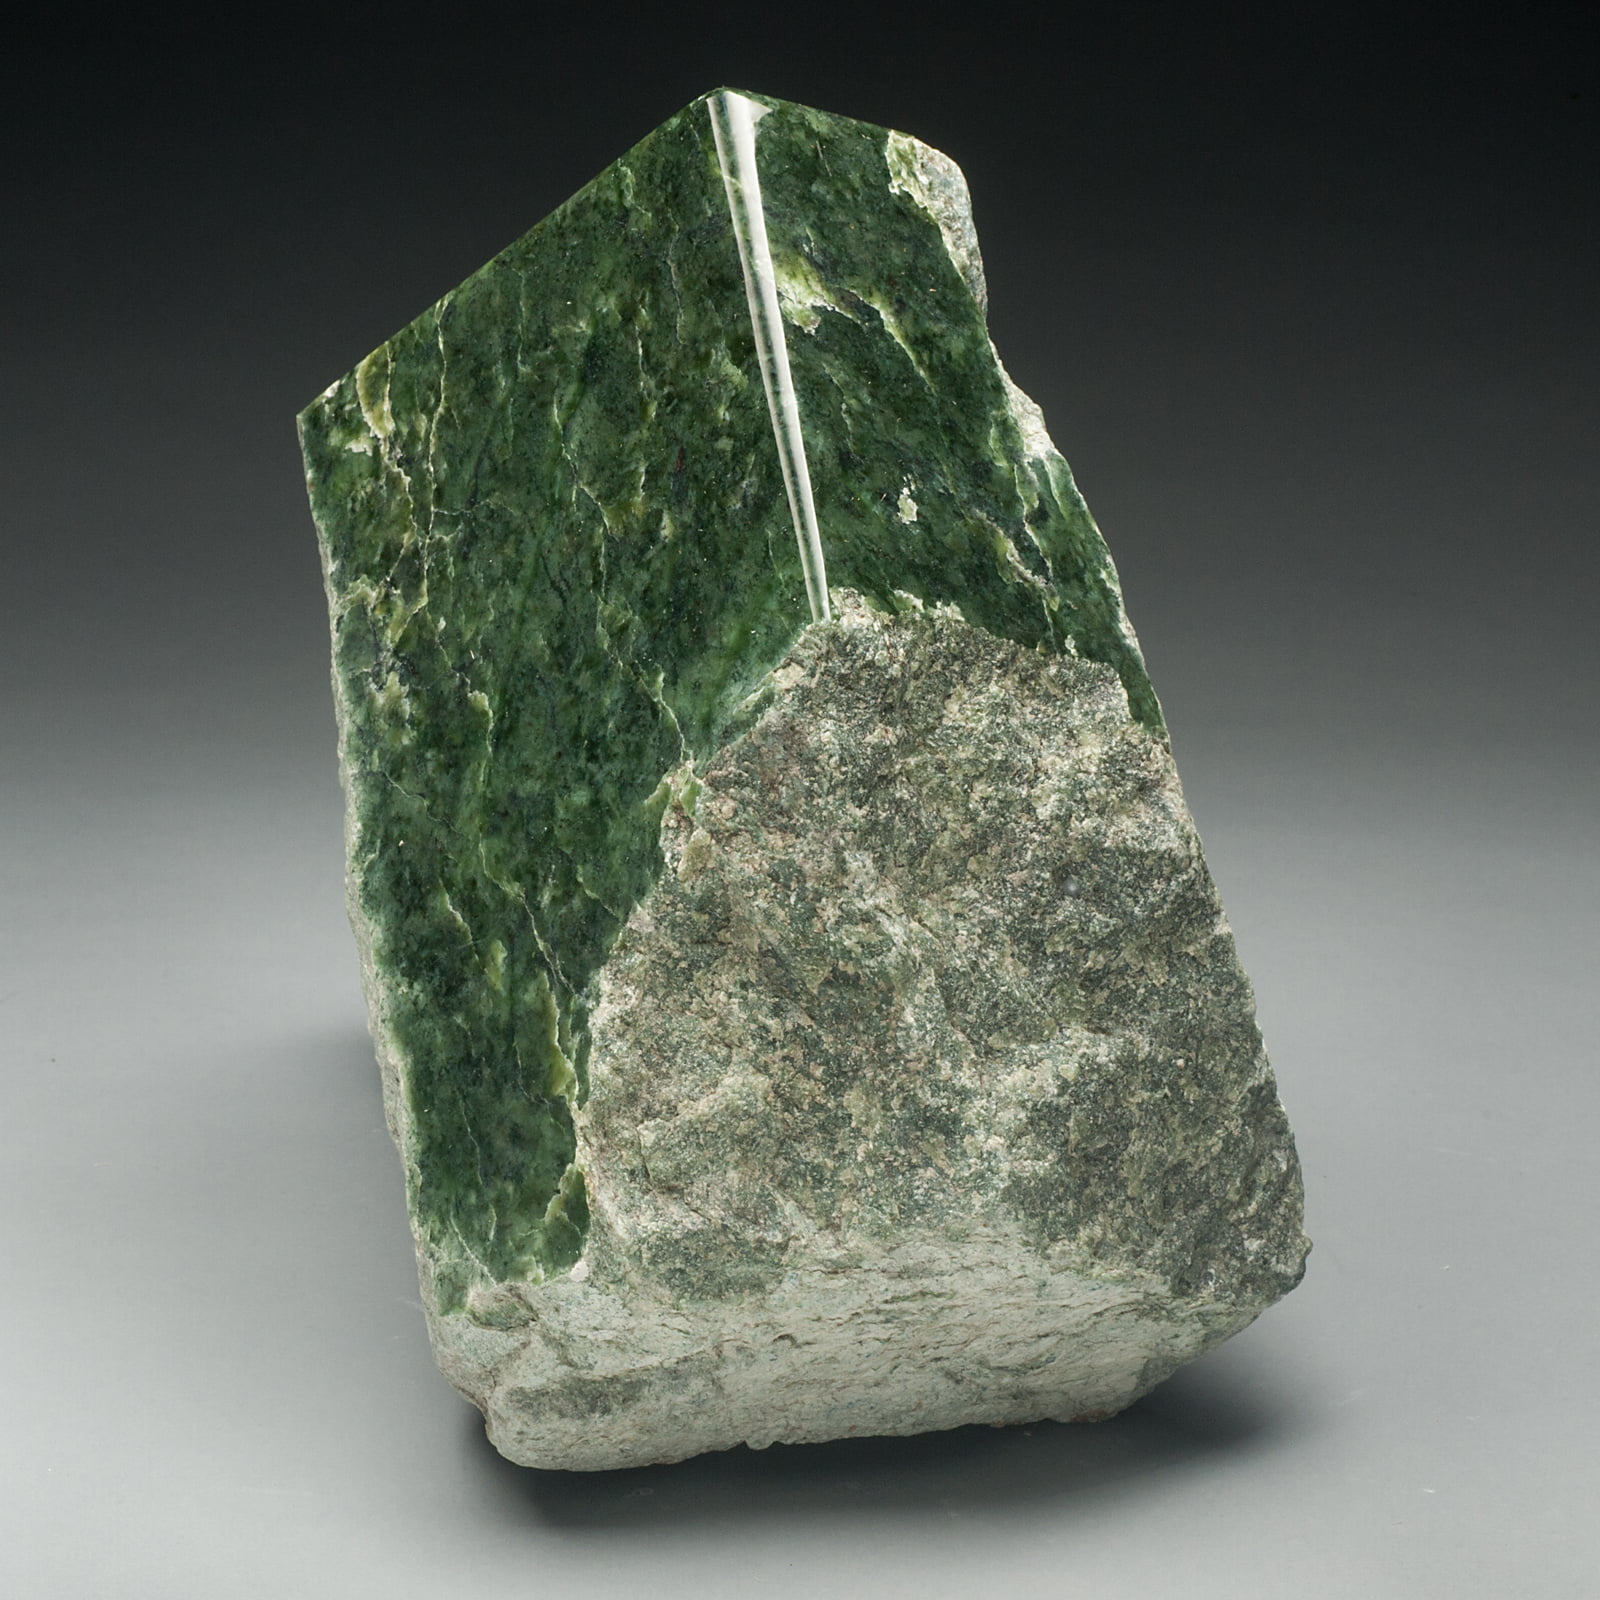 #J1 Dragon's Claw Sculpture of Rare Wyoming Jade